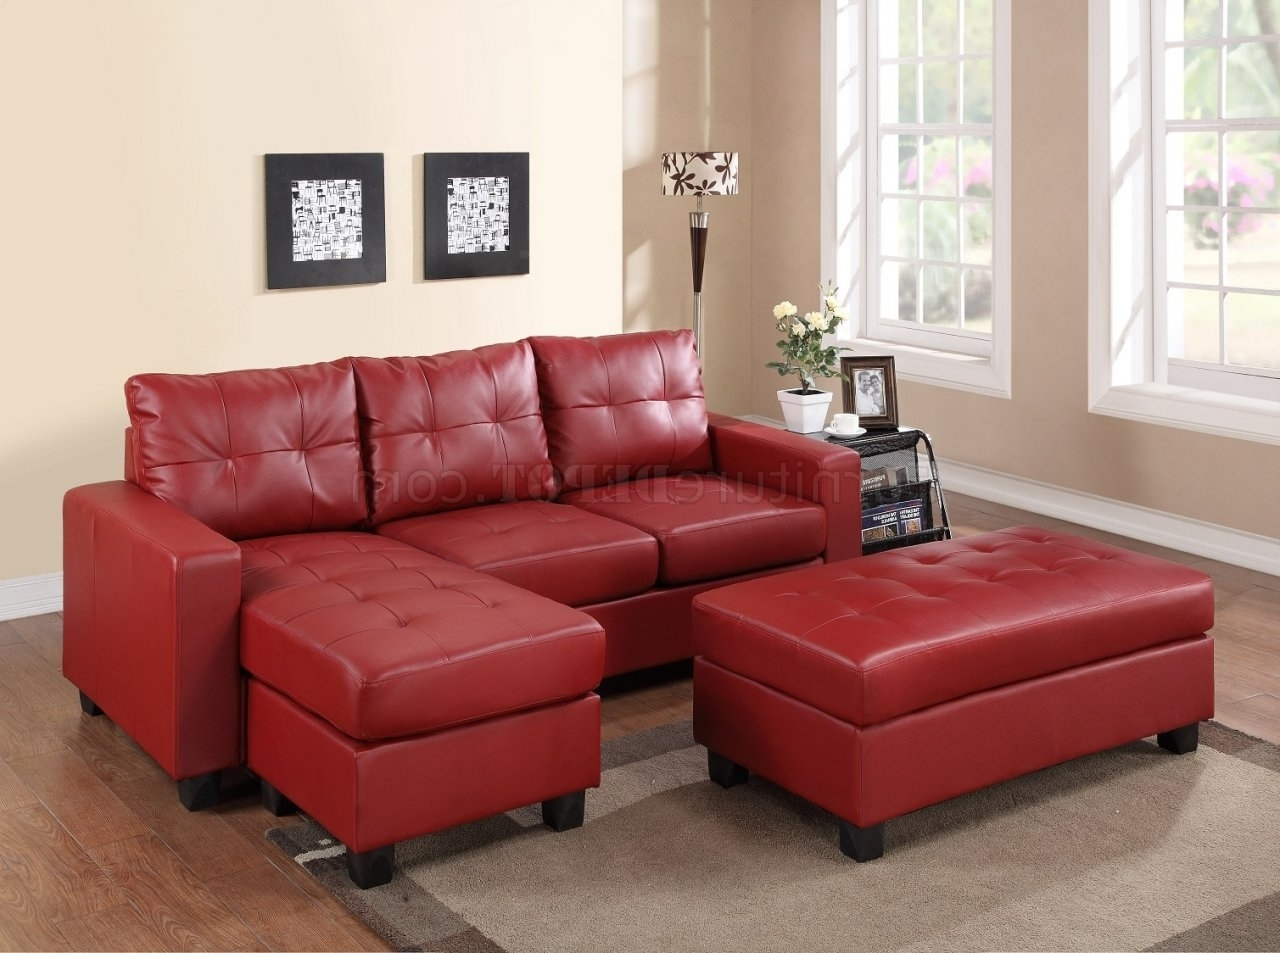 2511 Sectional Sofa Set In Red Bonded Leather Match Pu Inside Most Recently Released Red Sectional Sofas With Ottoman (View 13 of 15)